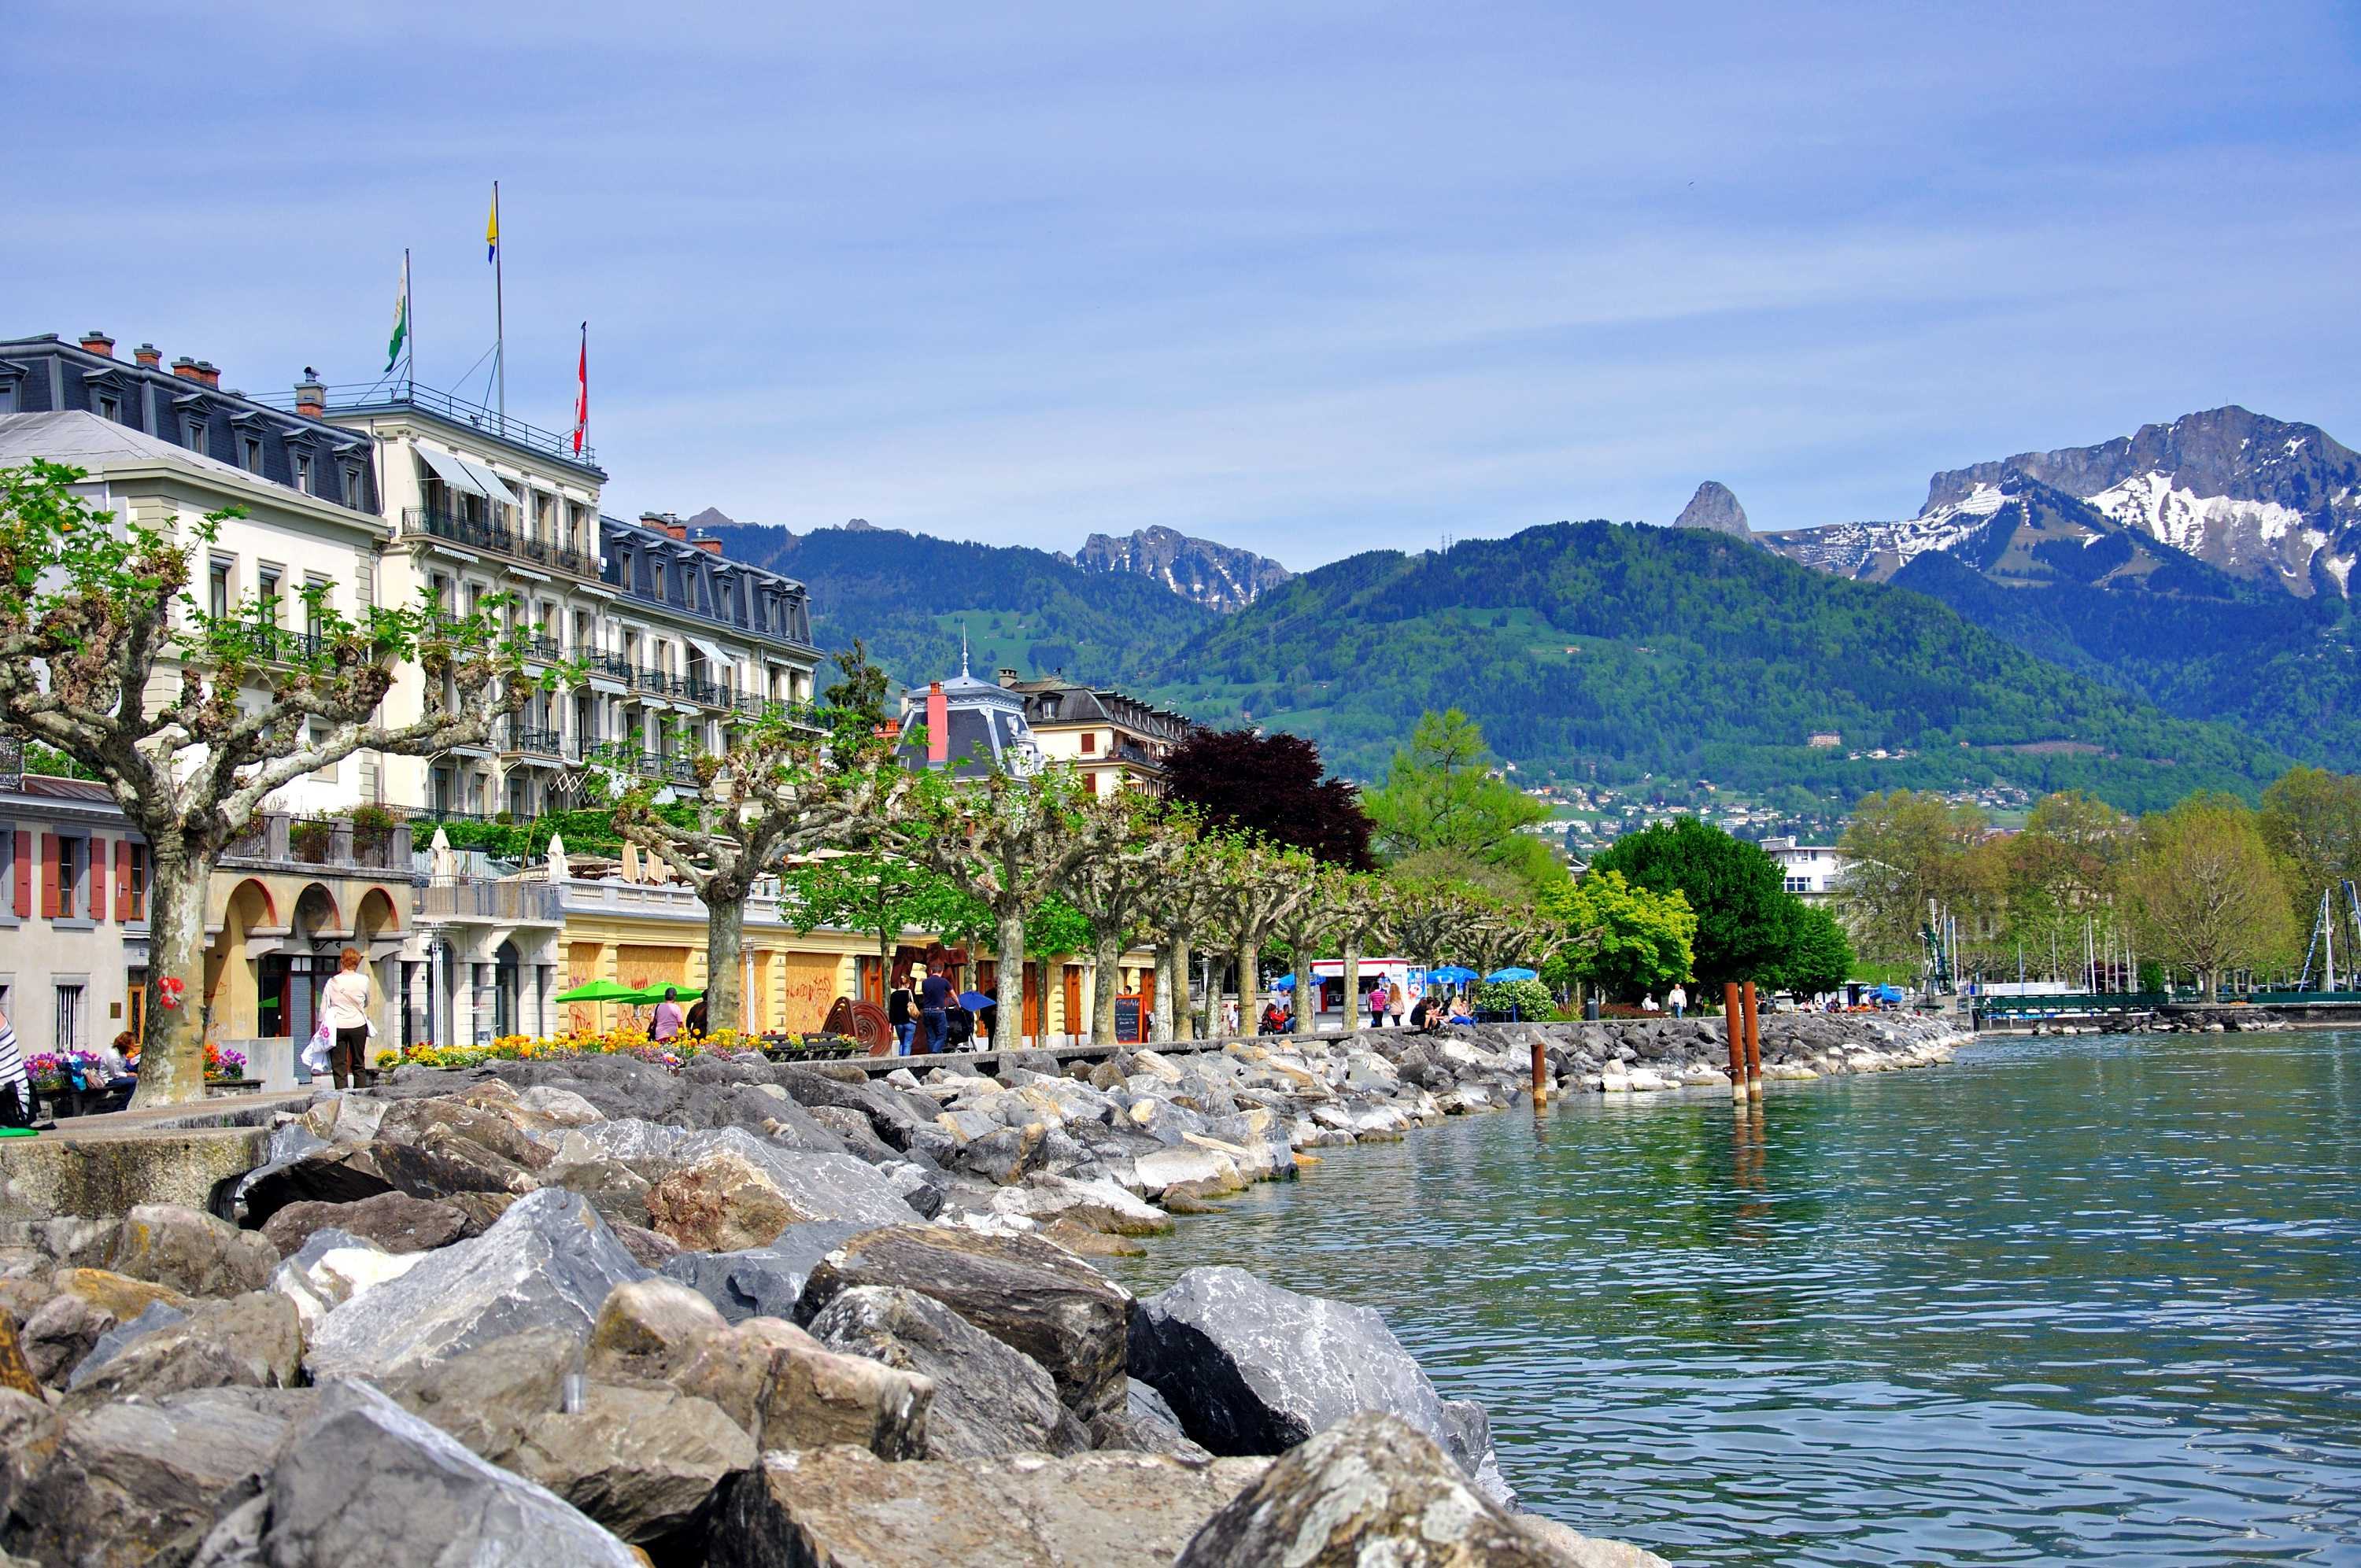 Astra Hotel Vevey - eig-apps.org - Swiss hotel directory